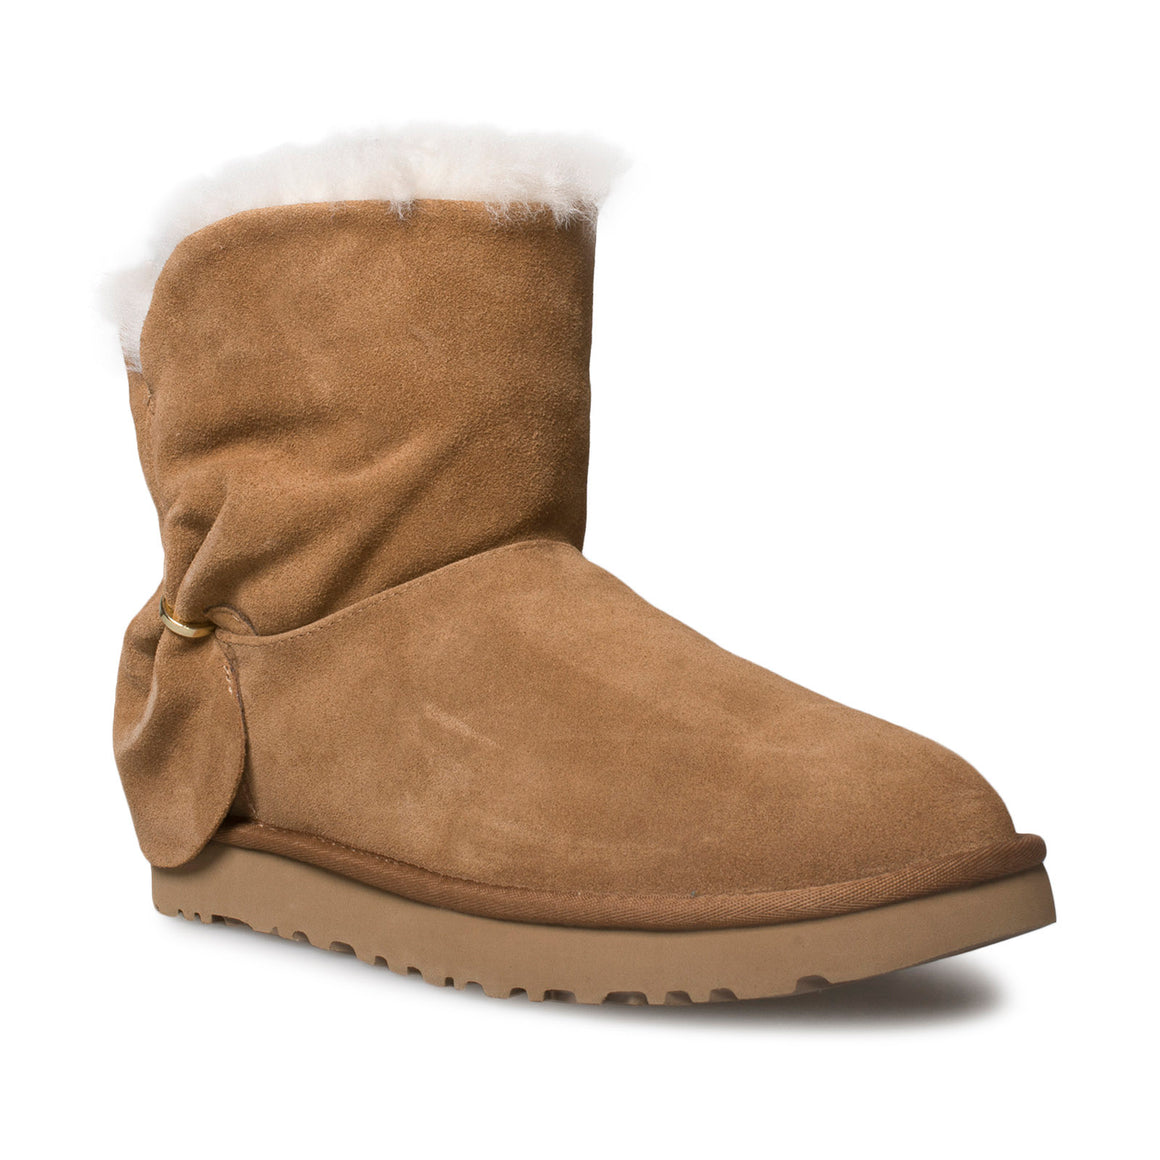 UGG Classic Mini Twist Chestnut Boots - Women's